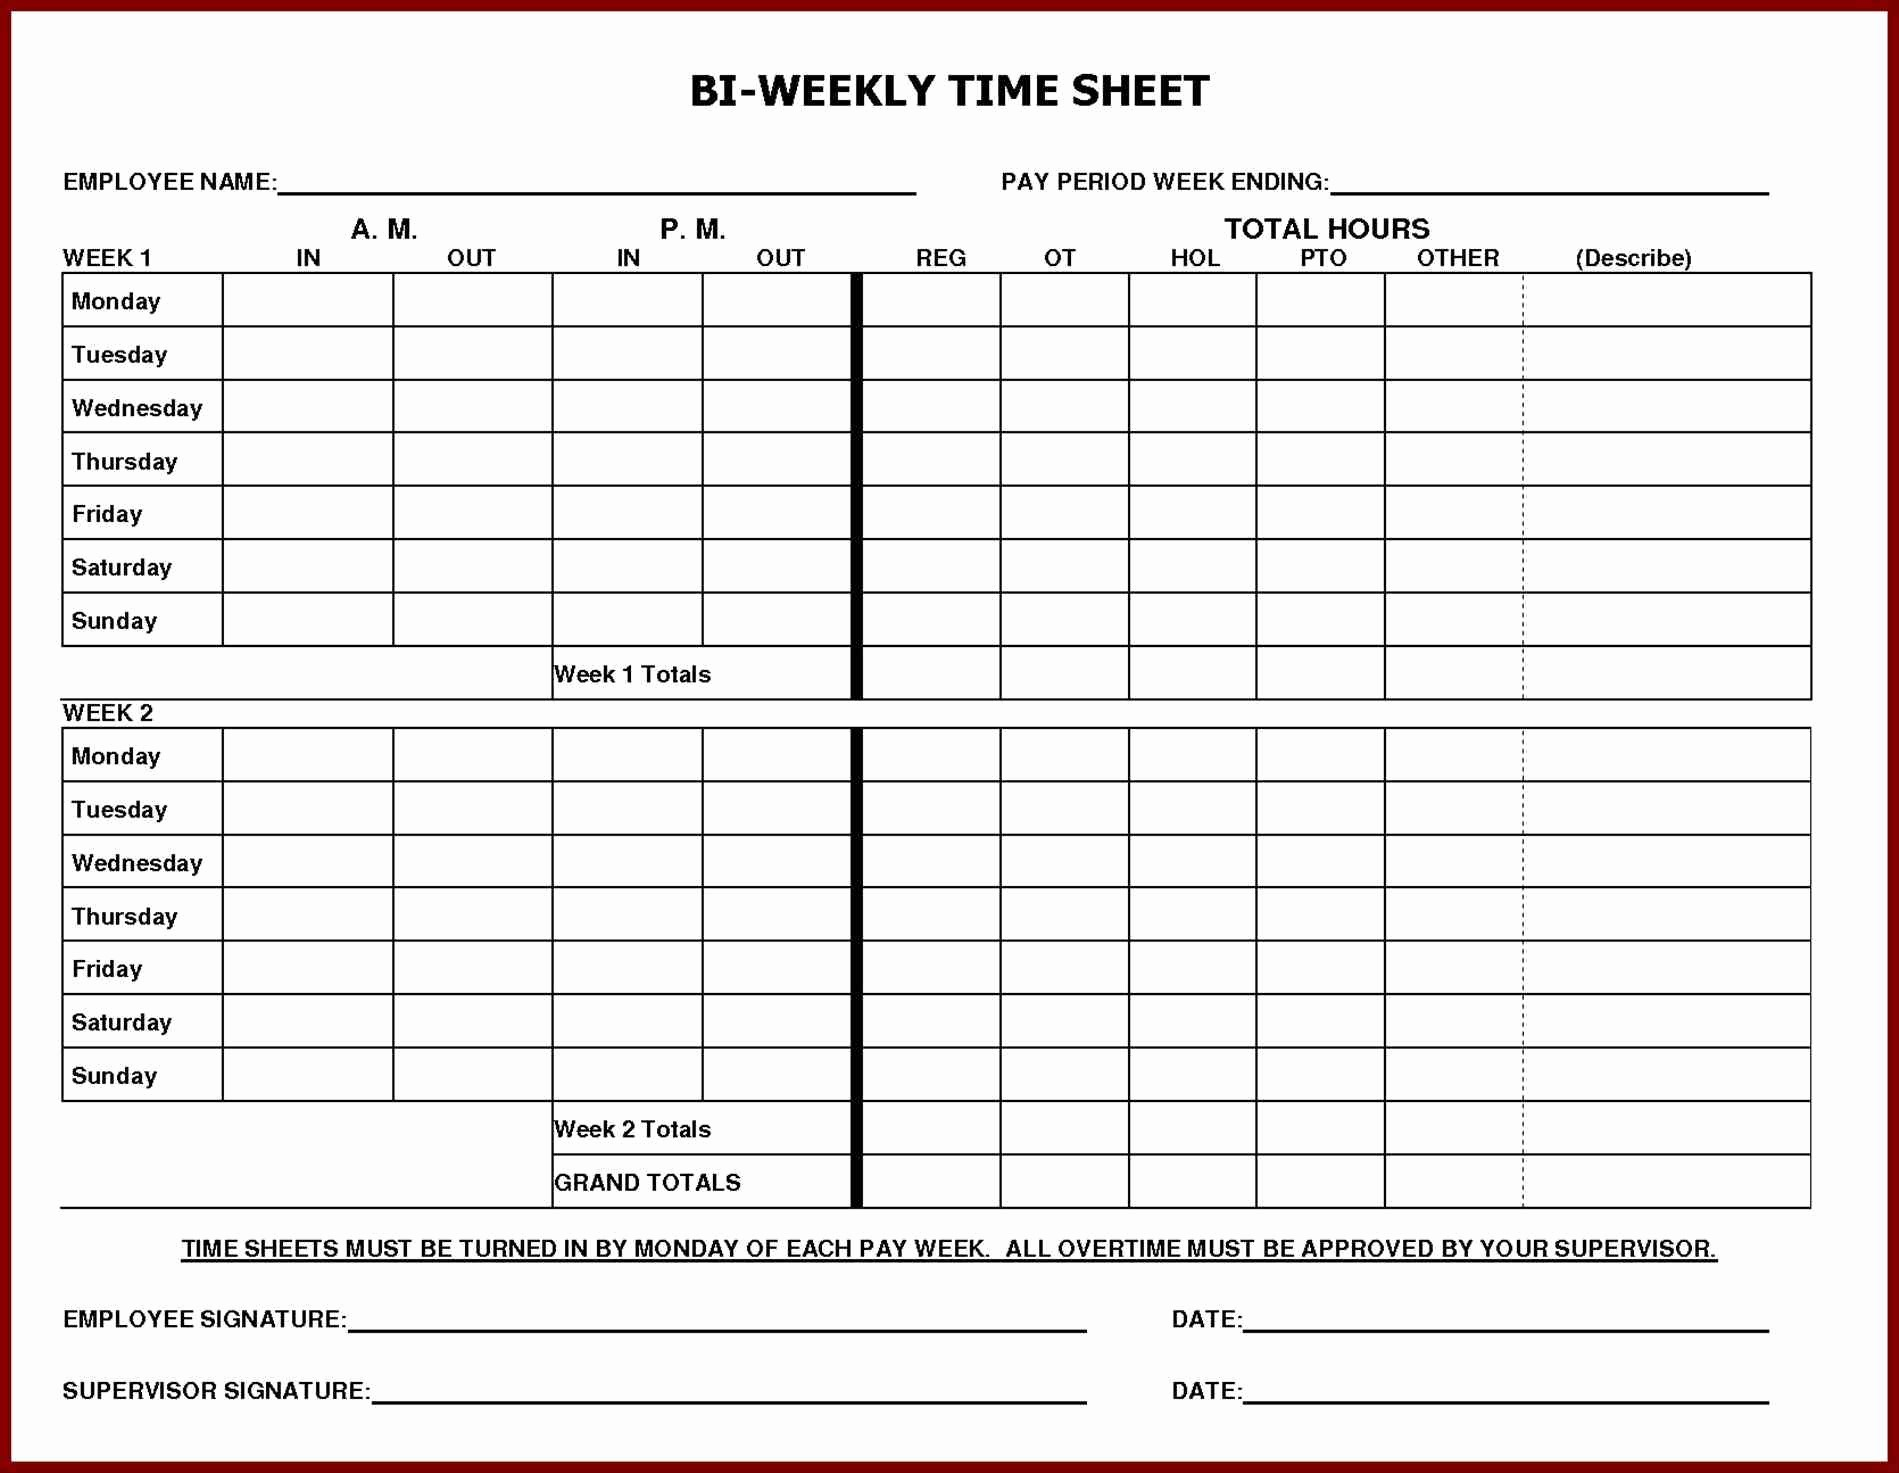 Free Printable Daily Time Sheets New Daily Time Sheet Printable Printable 360 Degree